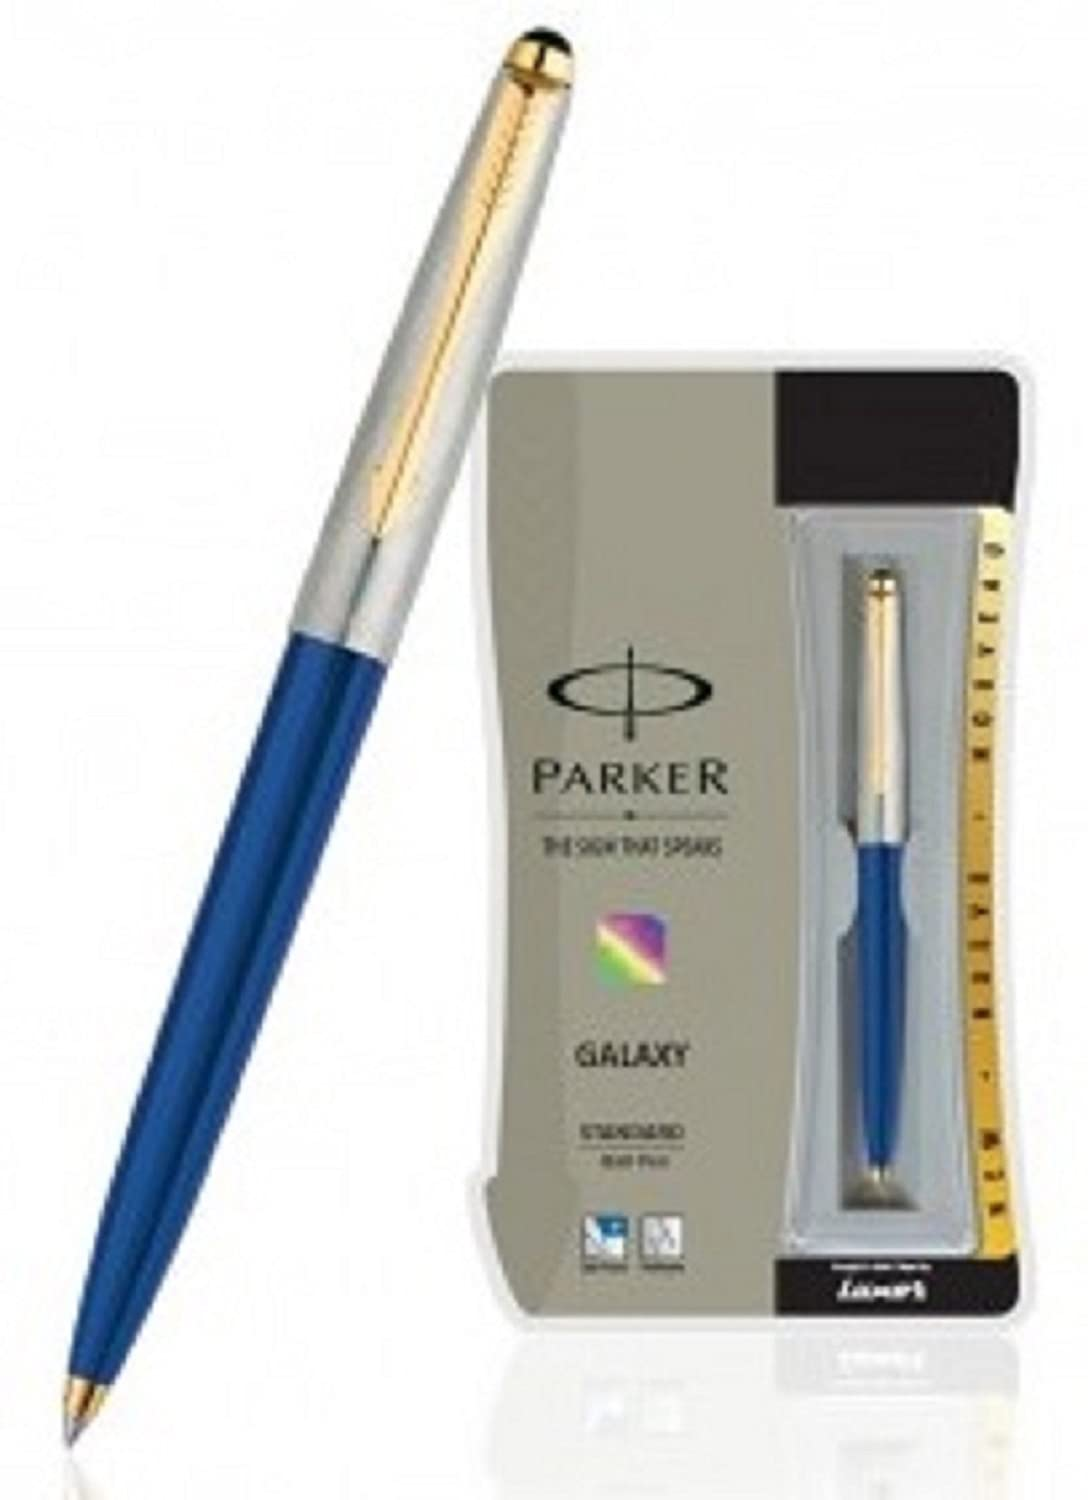 Parker Jotter//Galaxy//Classic Ball Pen Blue//Black Ink Fine//Medium Point New